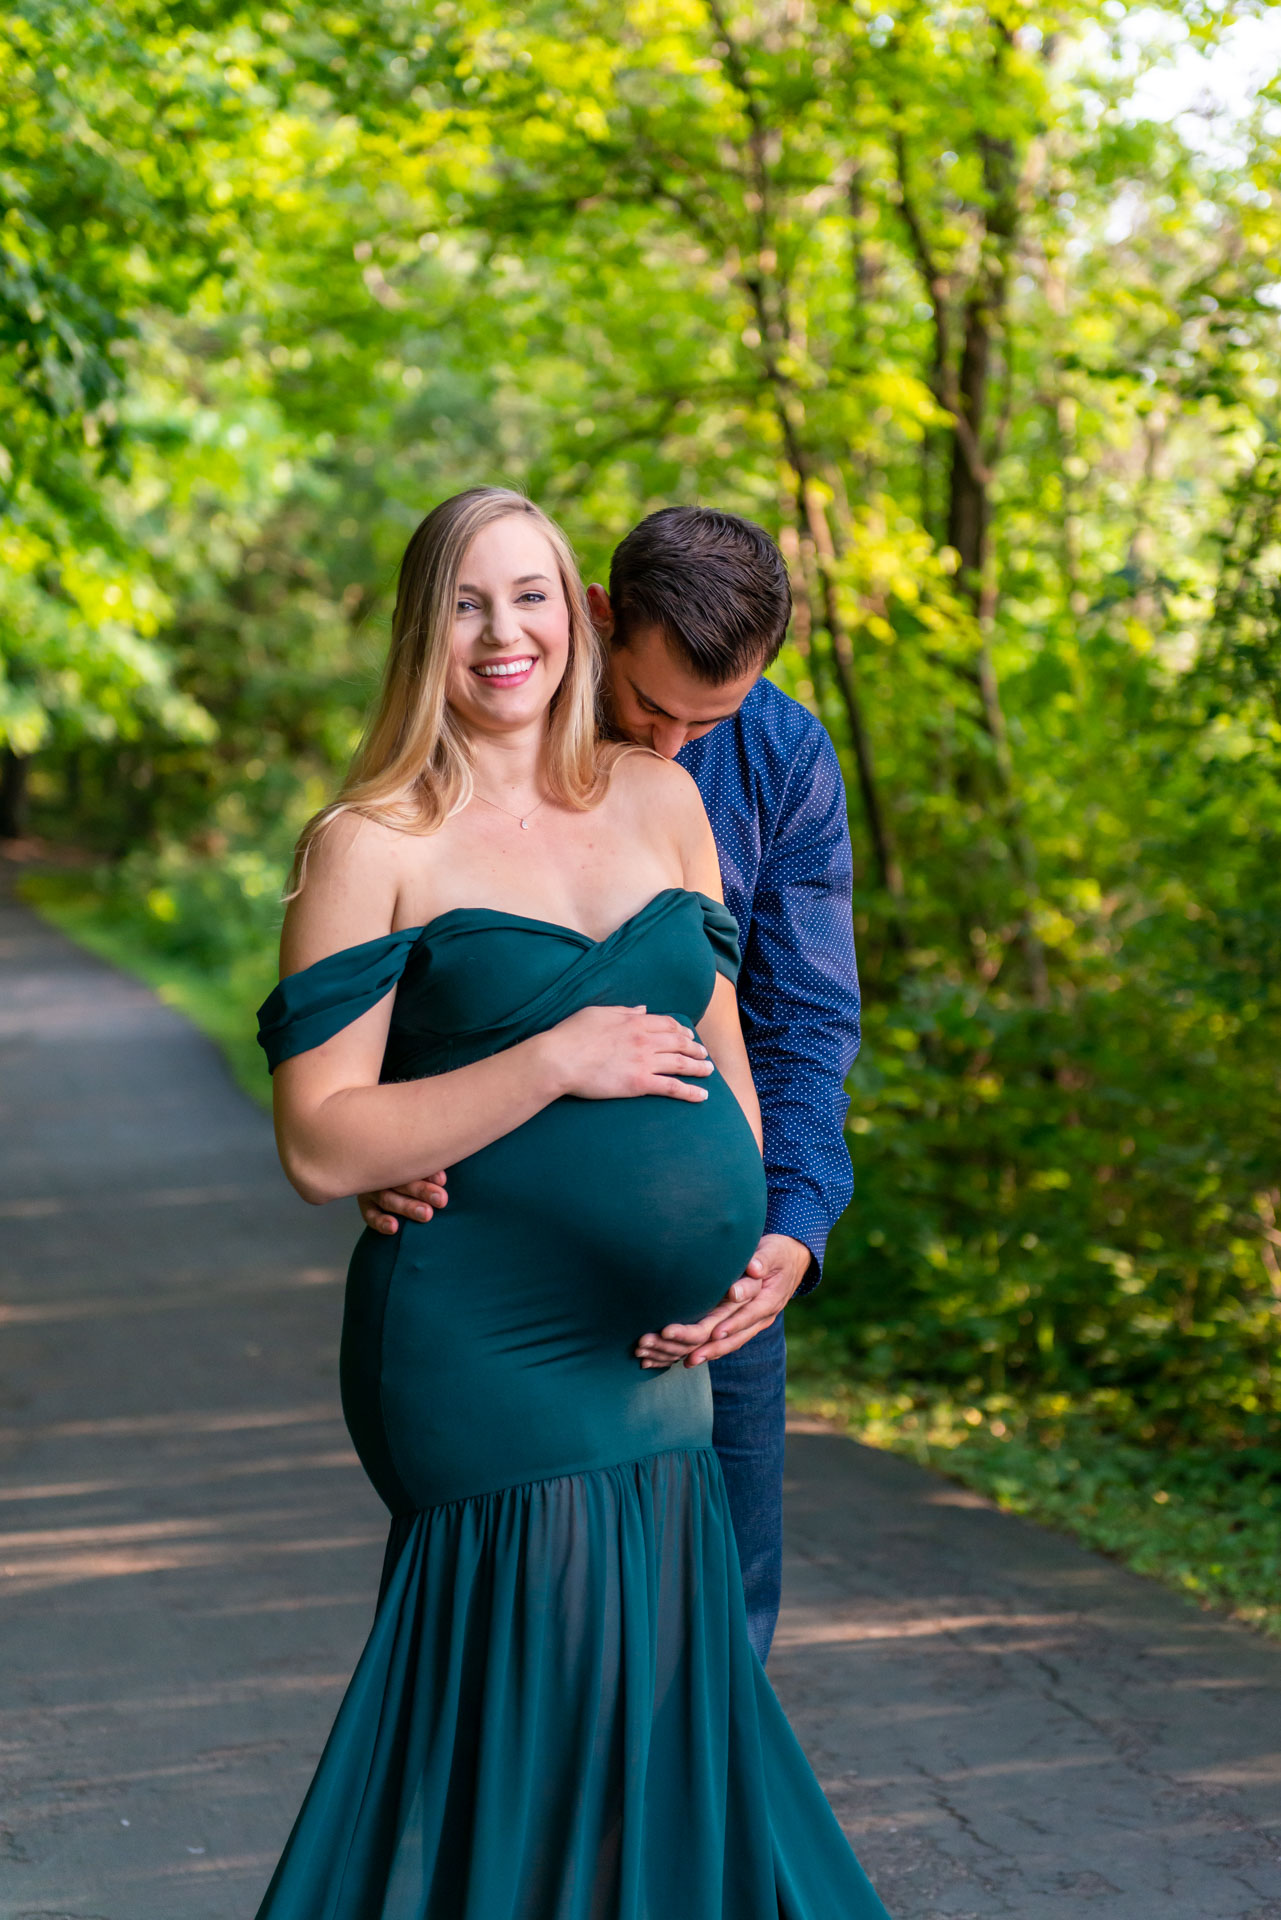 Couples maternity photo session with gown provided by Addie Lane Studios in Plymouth, MN